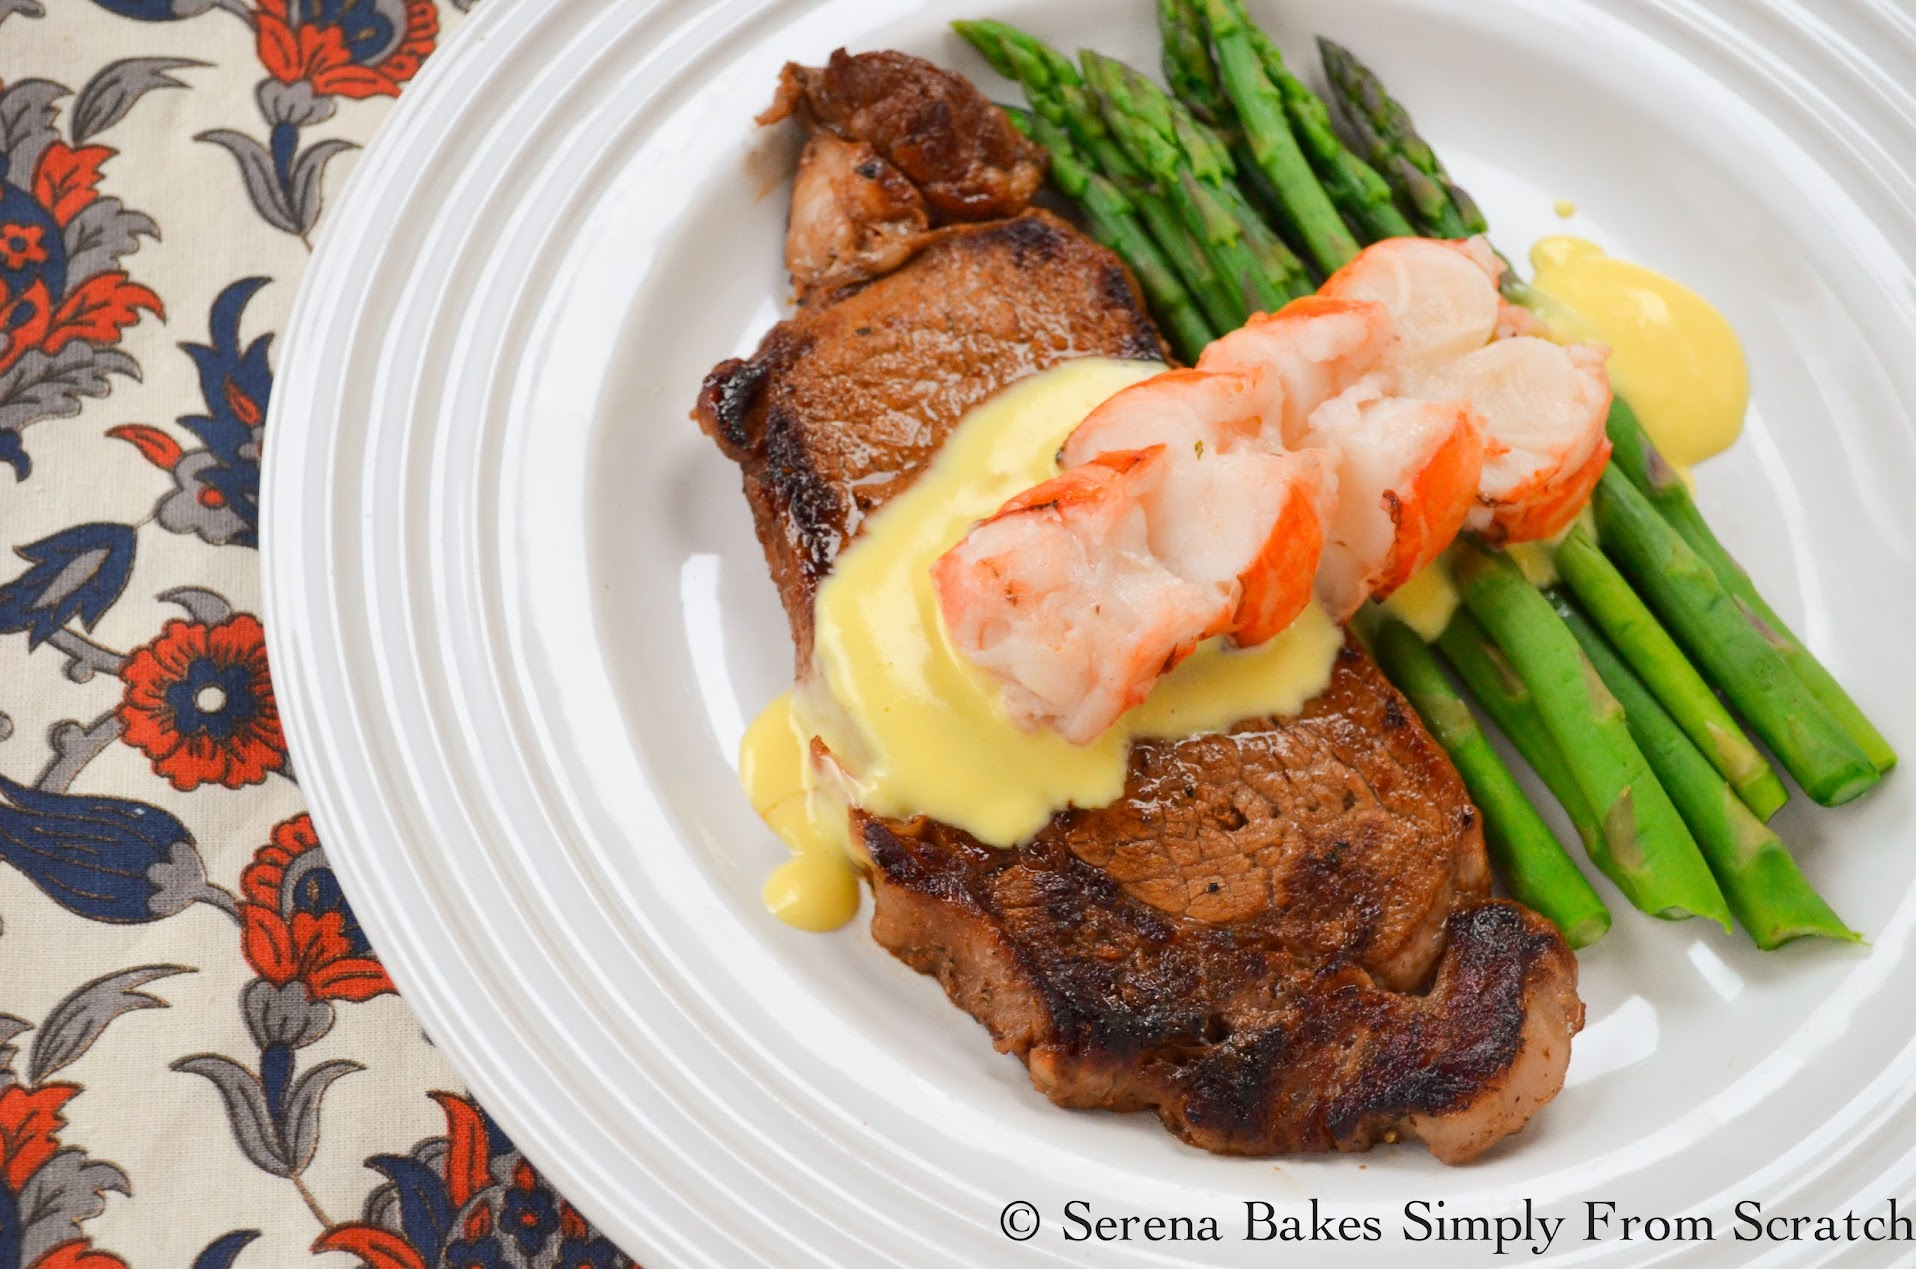 Perfectly Pan Seared Steak With Hollandaise Sauce And Lobster Tail Served  With A Side Of Asparagus